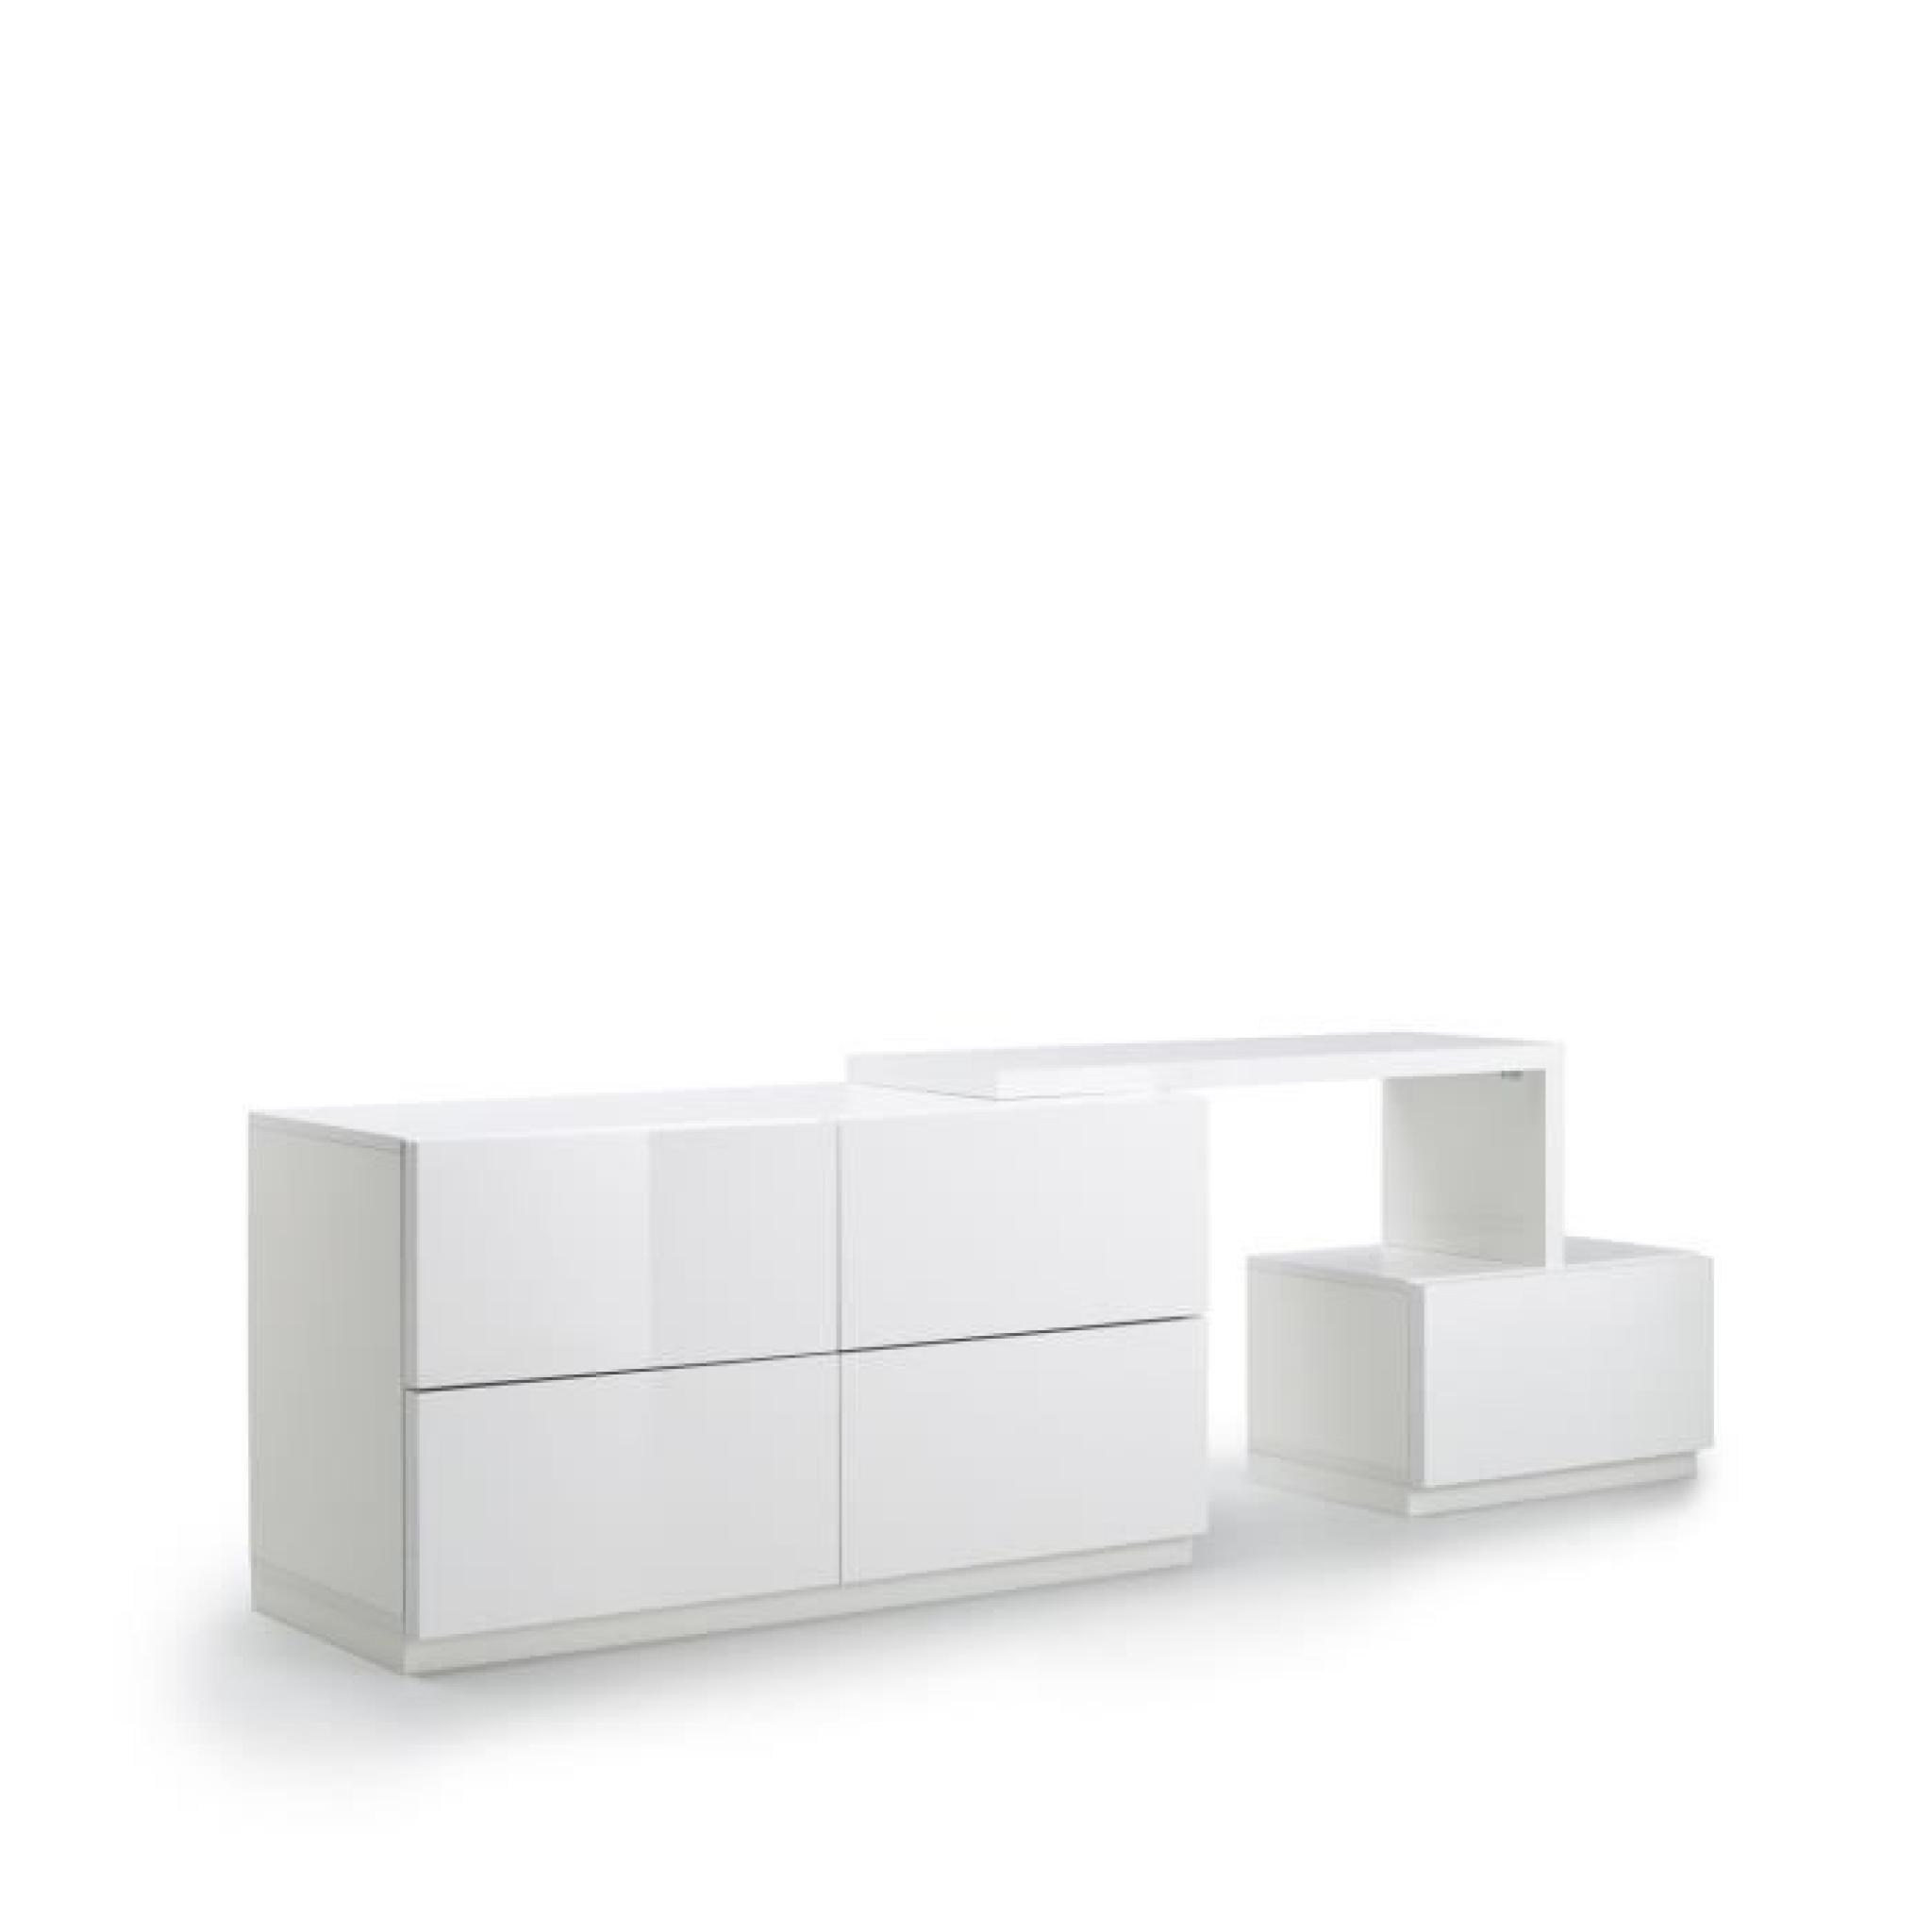 console blanc laqu ikea achetez bureau console occasion annonce vente paris ue console ikea. Black Bedroom Furniture Sets. Home Design Ideas